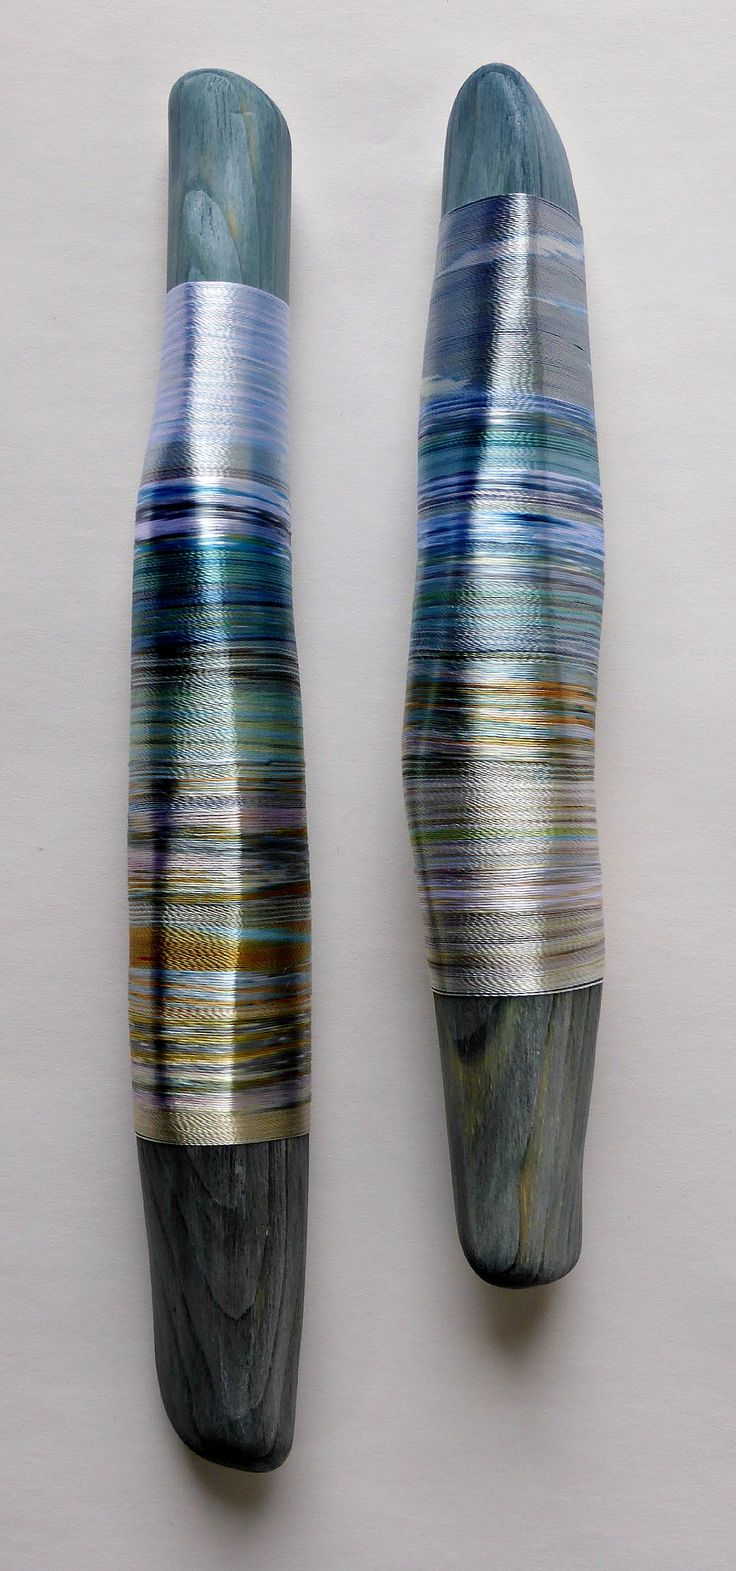 Rhythms of Reflected Shorelines. Hand-dyed threads. Helena Emmans.